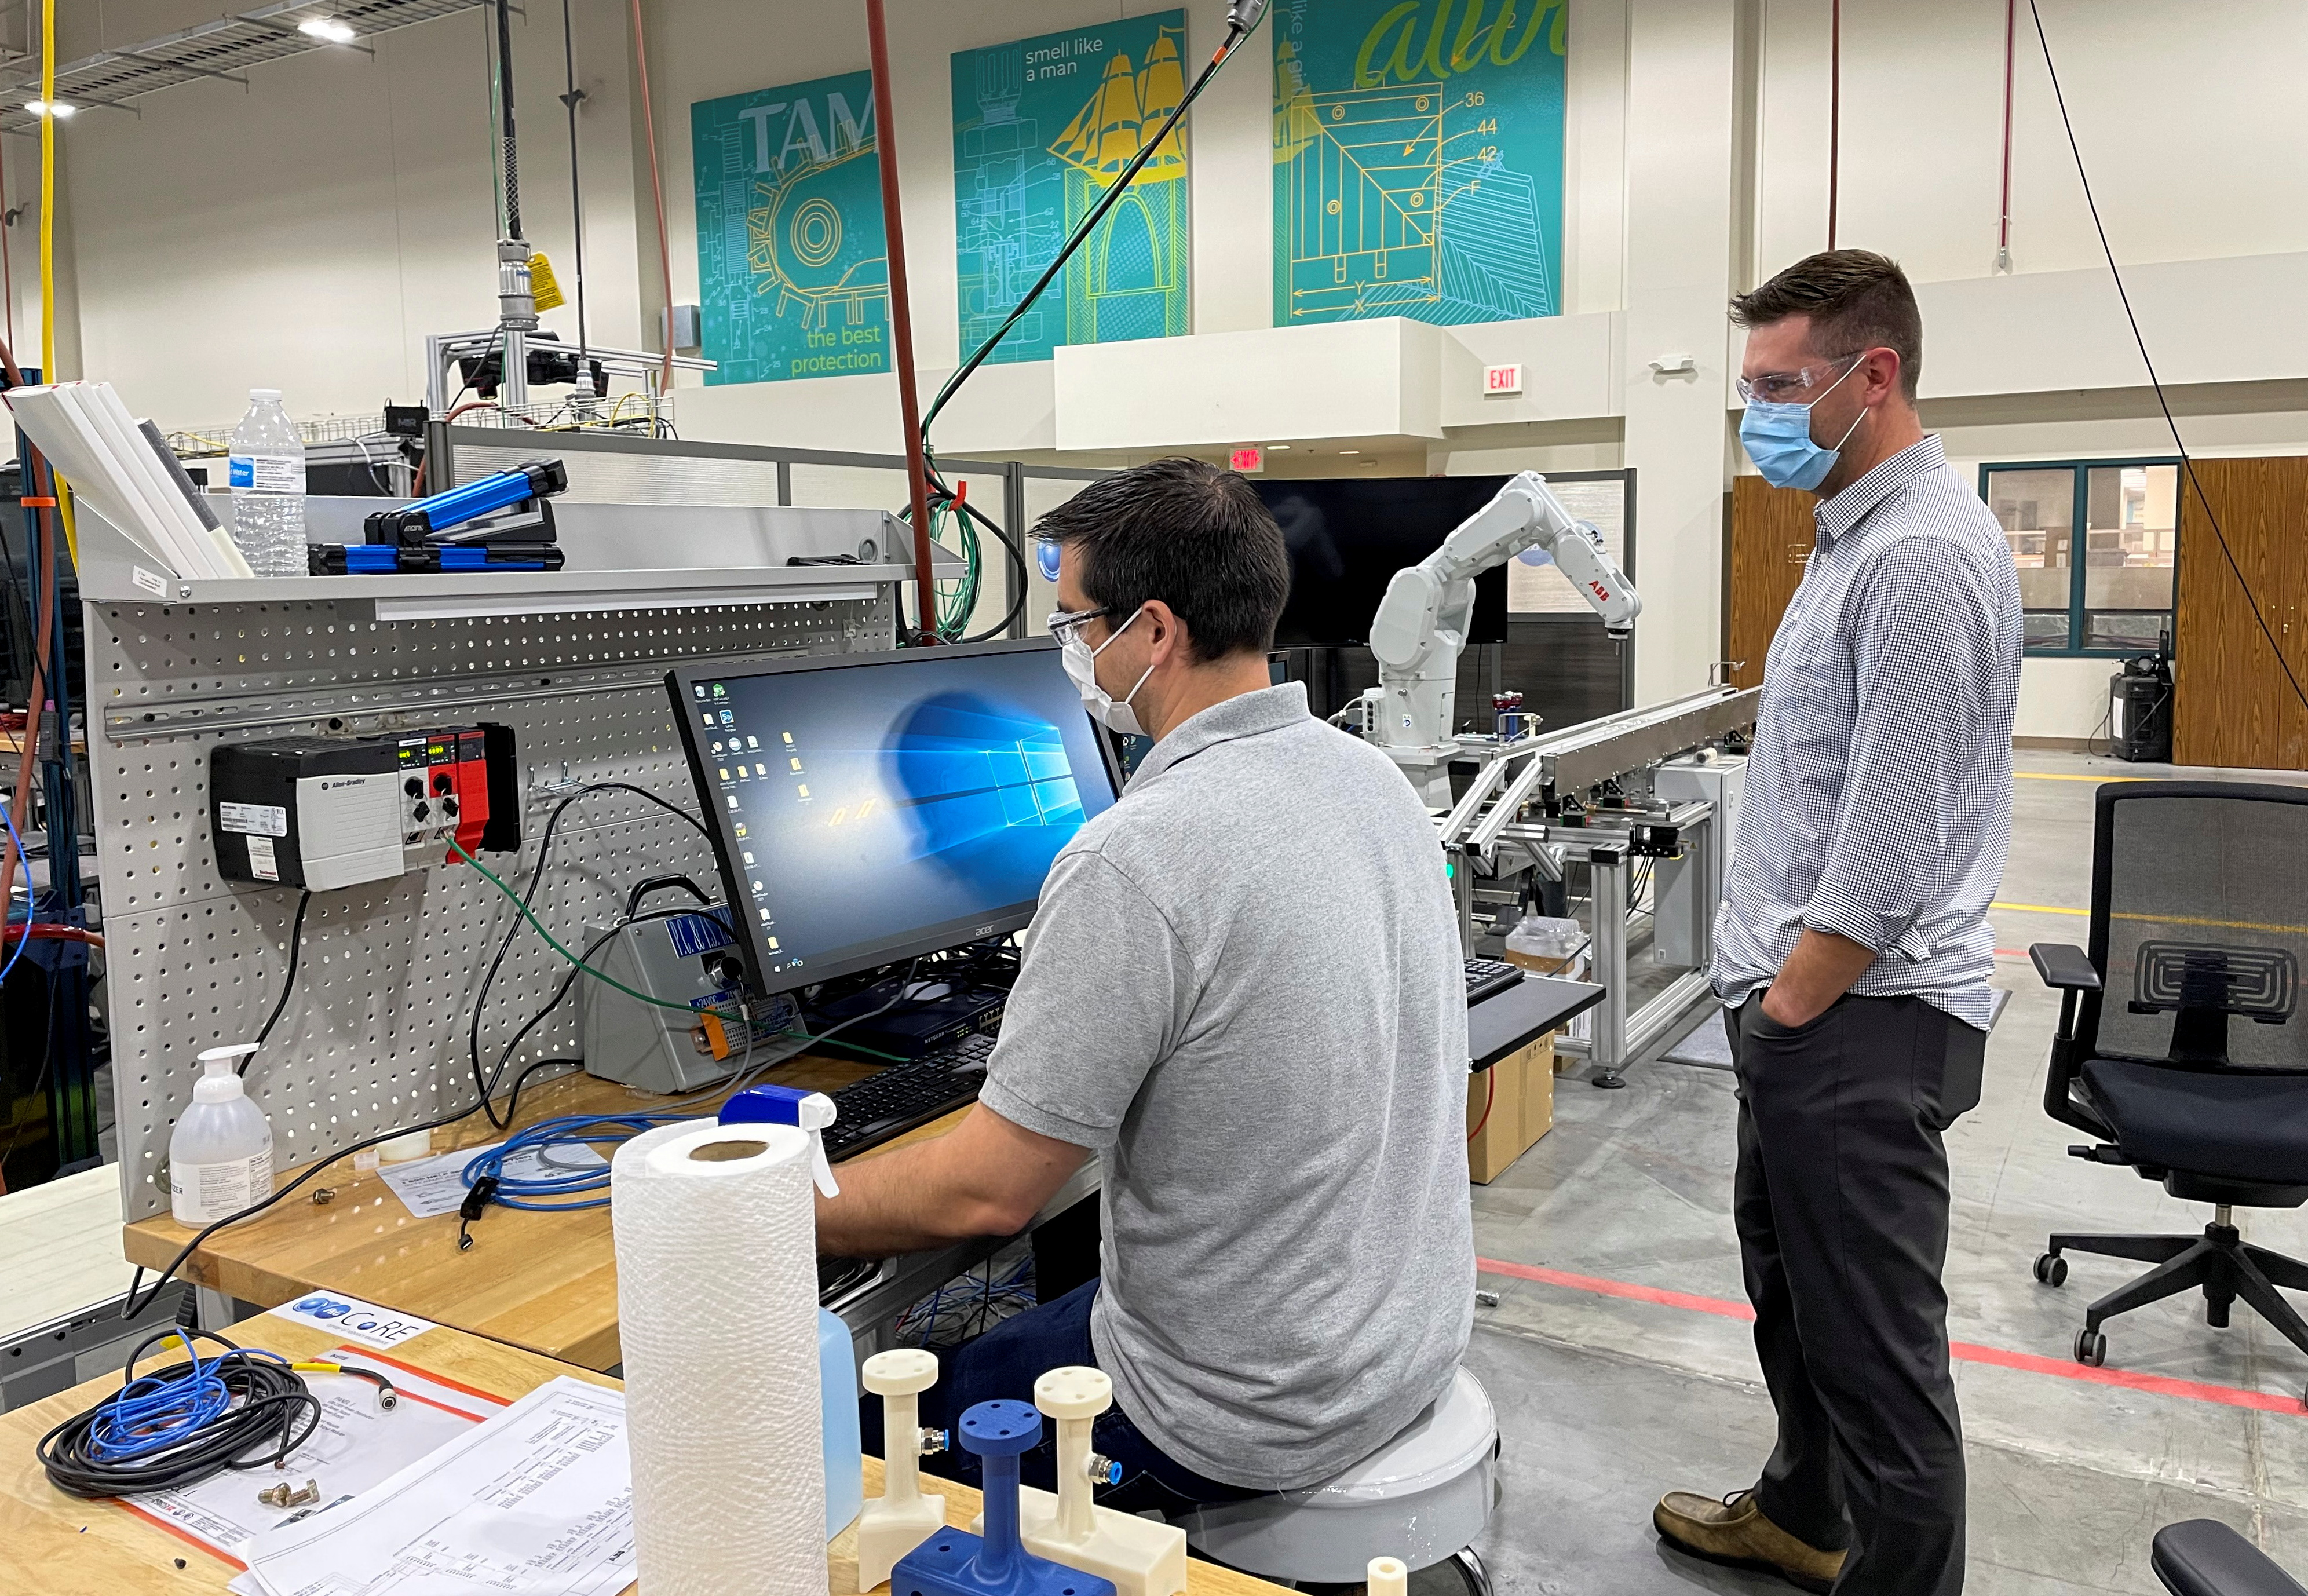 Researchers test new robots at Procter & Gamble's corporate engineering laboratory in Cincinnati, Ohio, U.S., May 27, 2021. Picture taken May 27, 2021. REUTERS/Timothy Aeppel